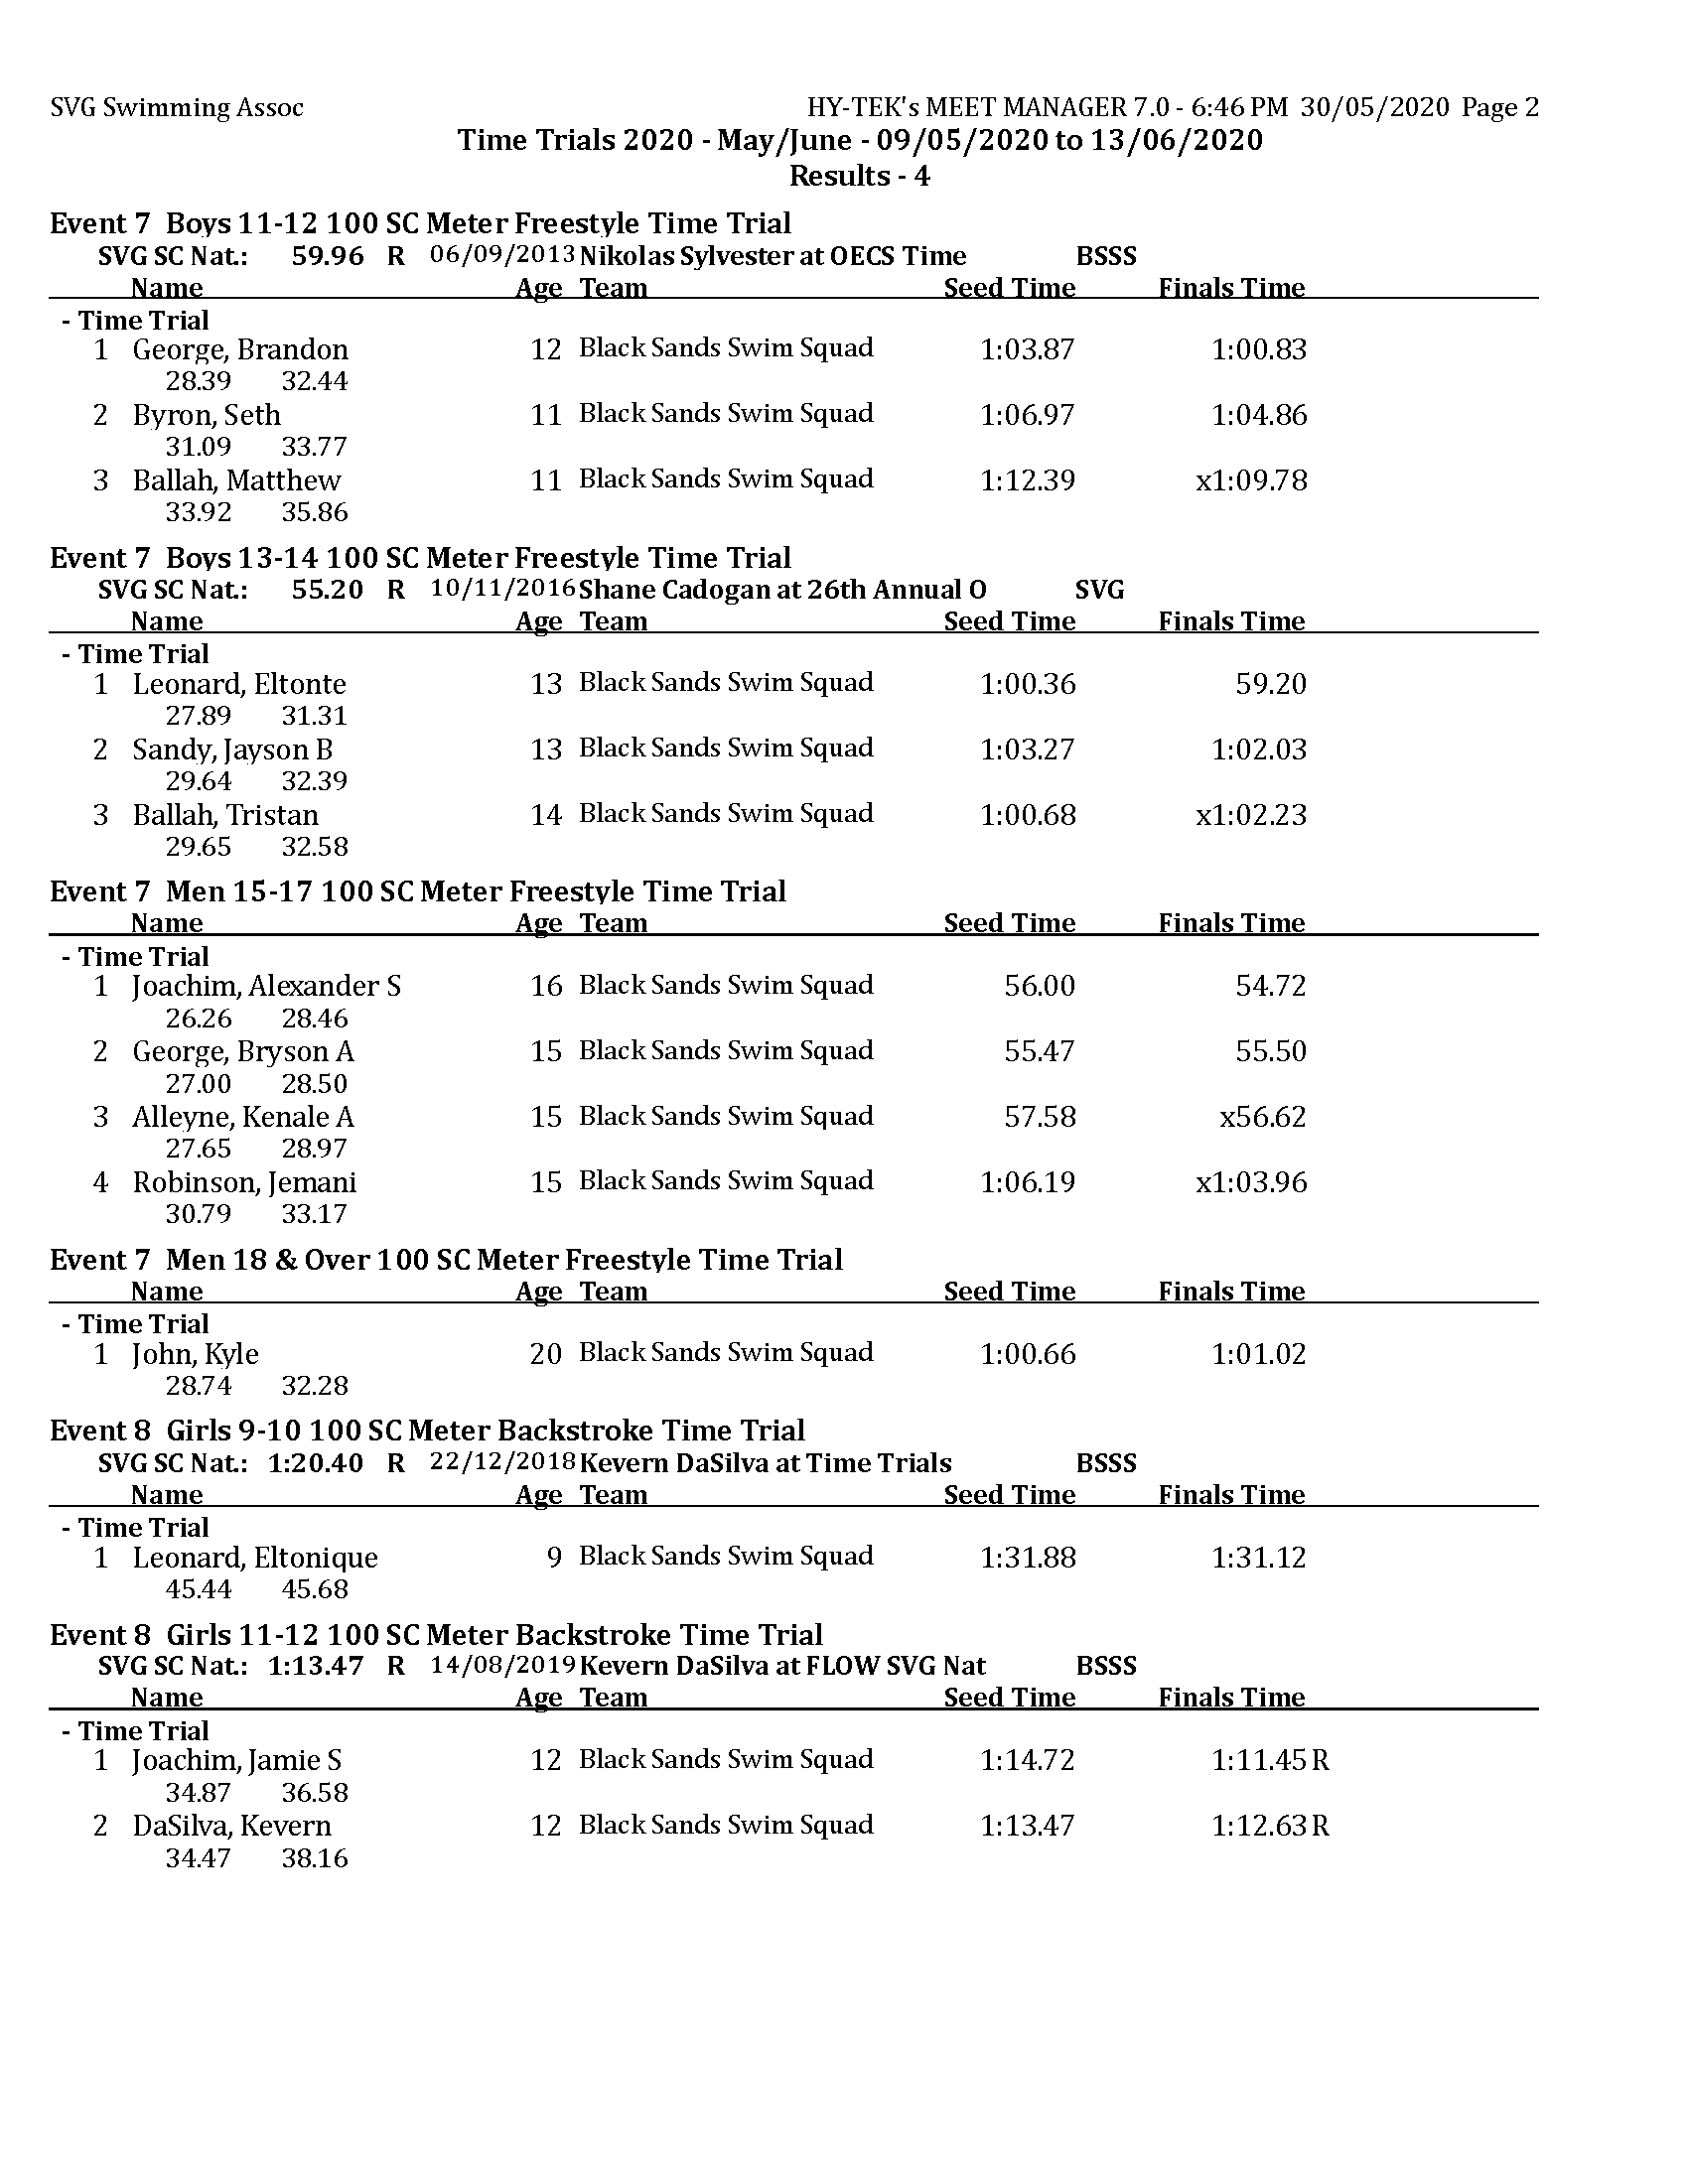 TT 2020 - May - Results day 4 MM_Page_2